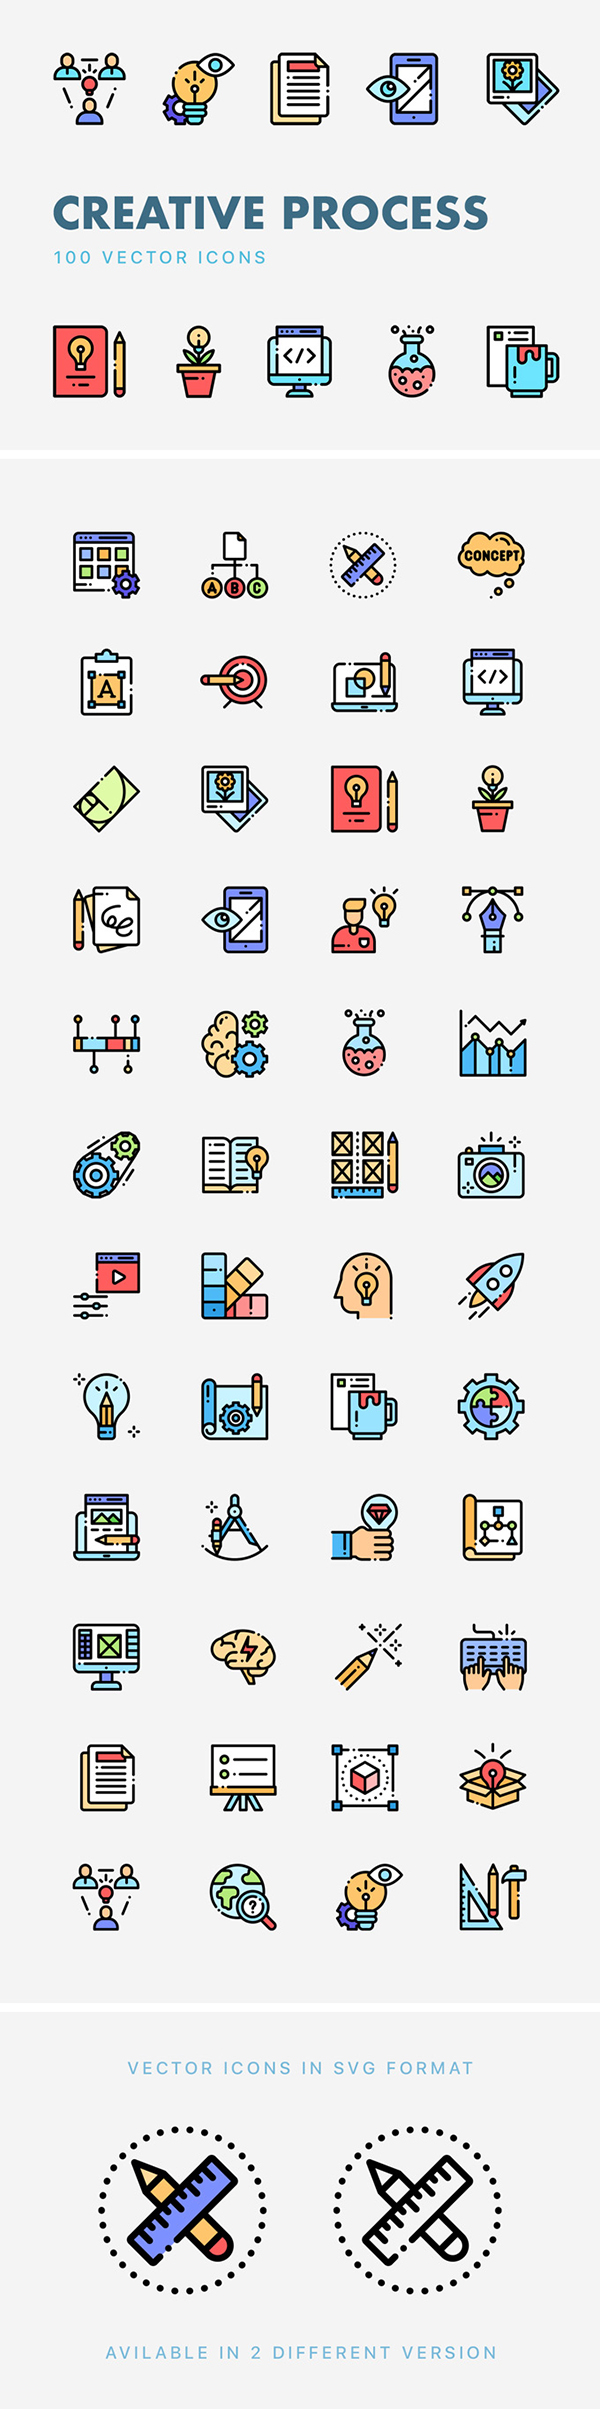 Free Creative Process Vector Icons